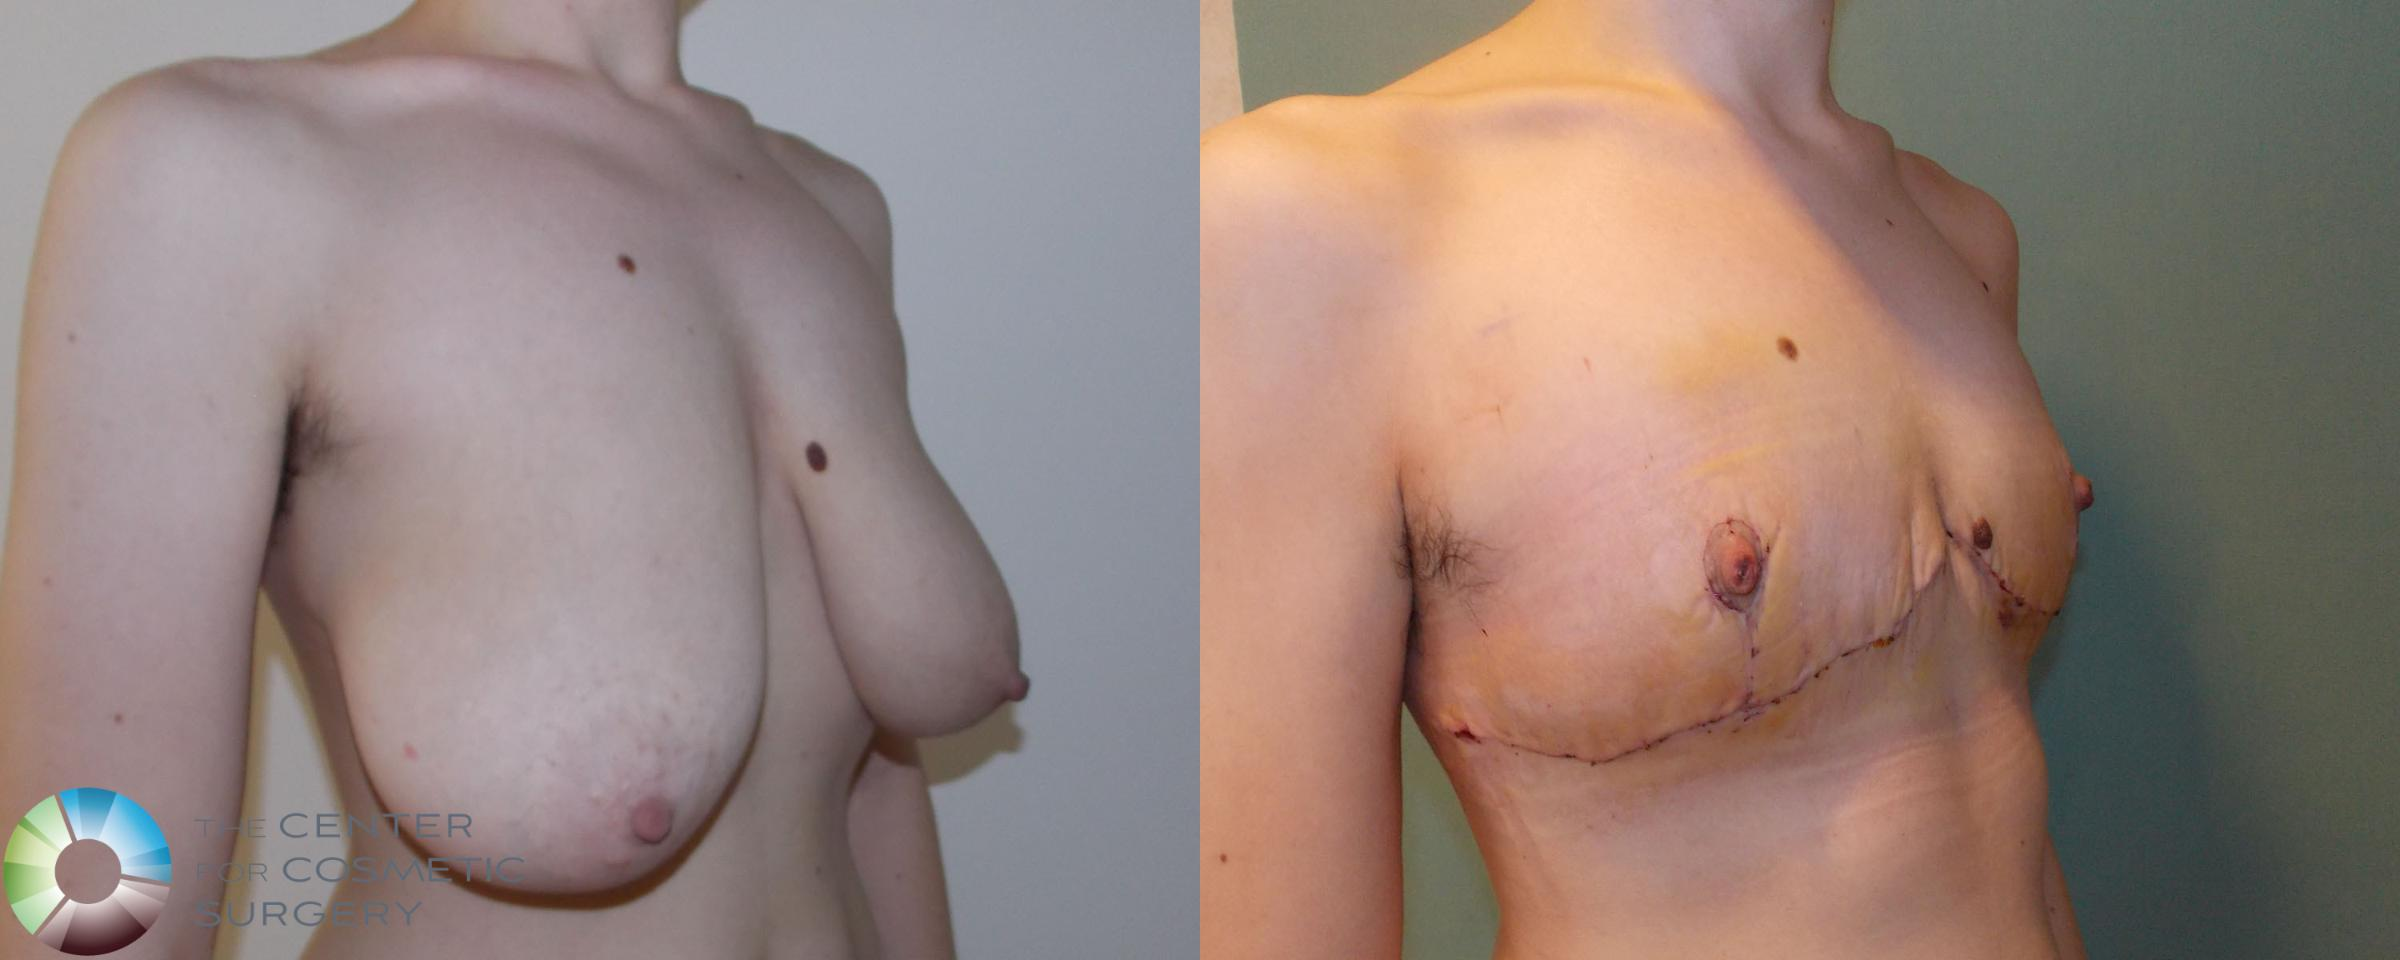 FTM Top Surgery/Chest Masculinization Case 693 Before & After View #2 | Golden, CO | The Center for Cosmetic Surgery